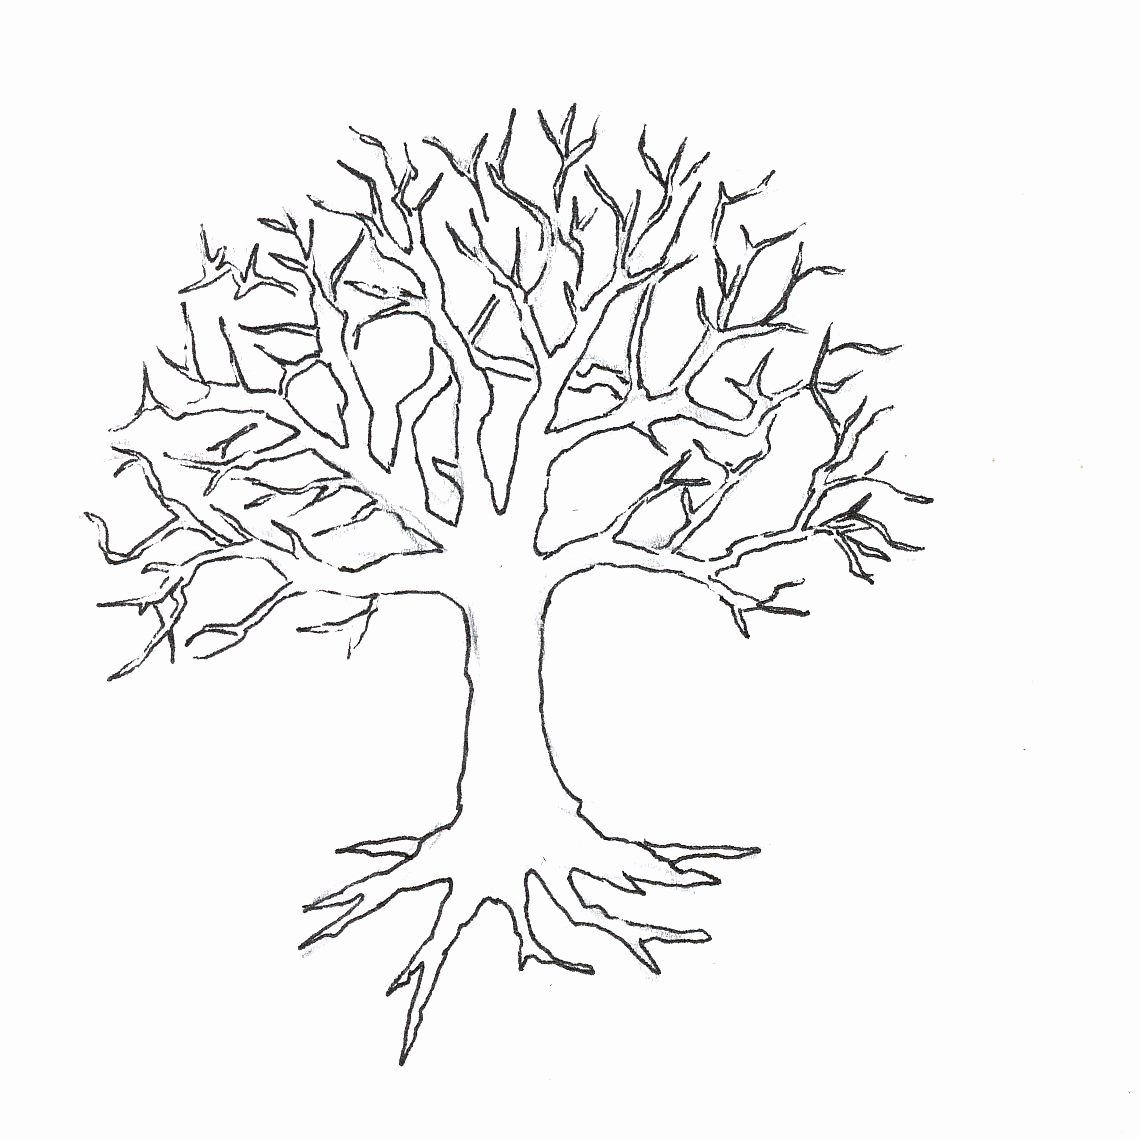 How to Draw A Simple Tree without Leaves Inspirational Tree without Leaves Coloring Page to Print and